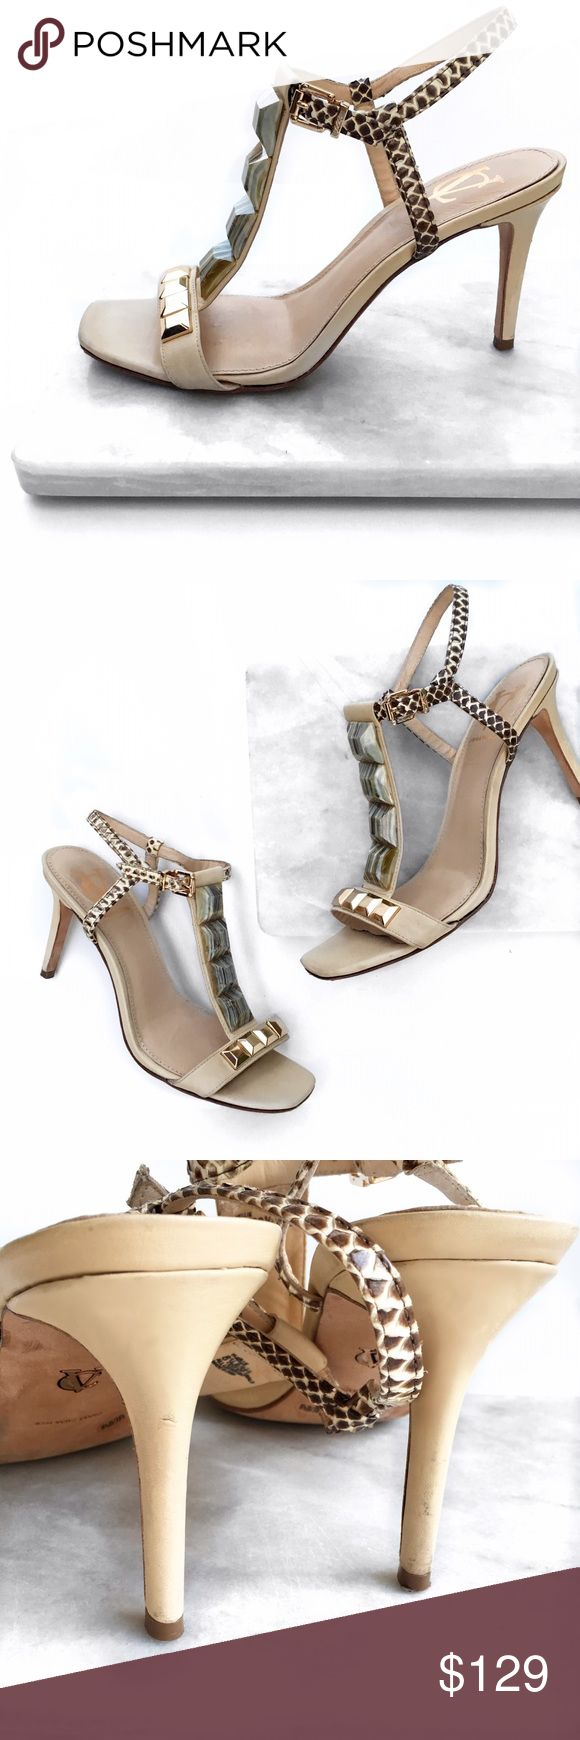 Vince Camuto signature nude heel Love these super chic heels from Vince Camuto's signature luxury line. No trades. Open to offers Vince Camuto Shoes Heels